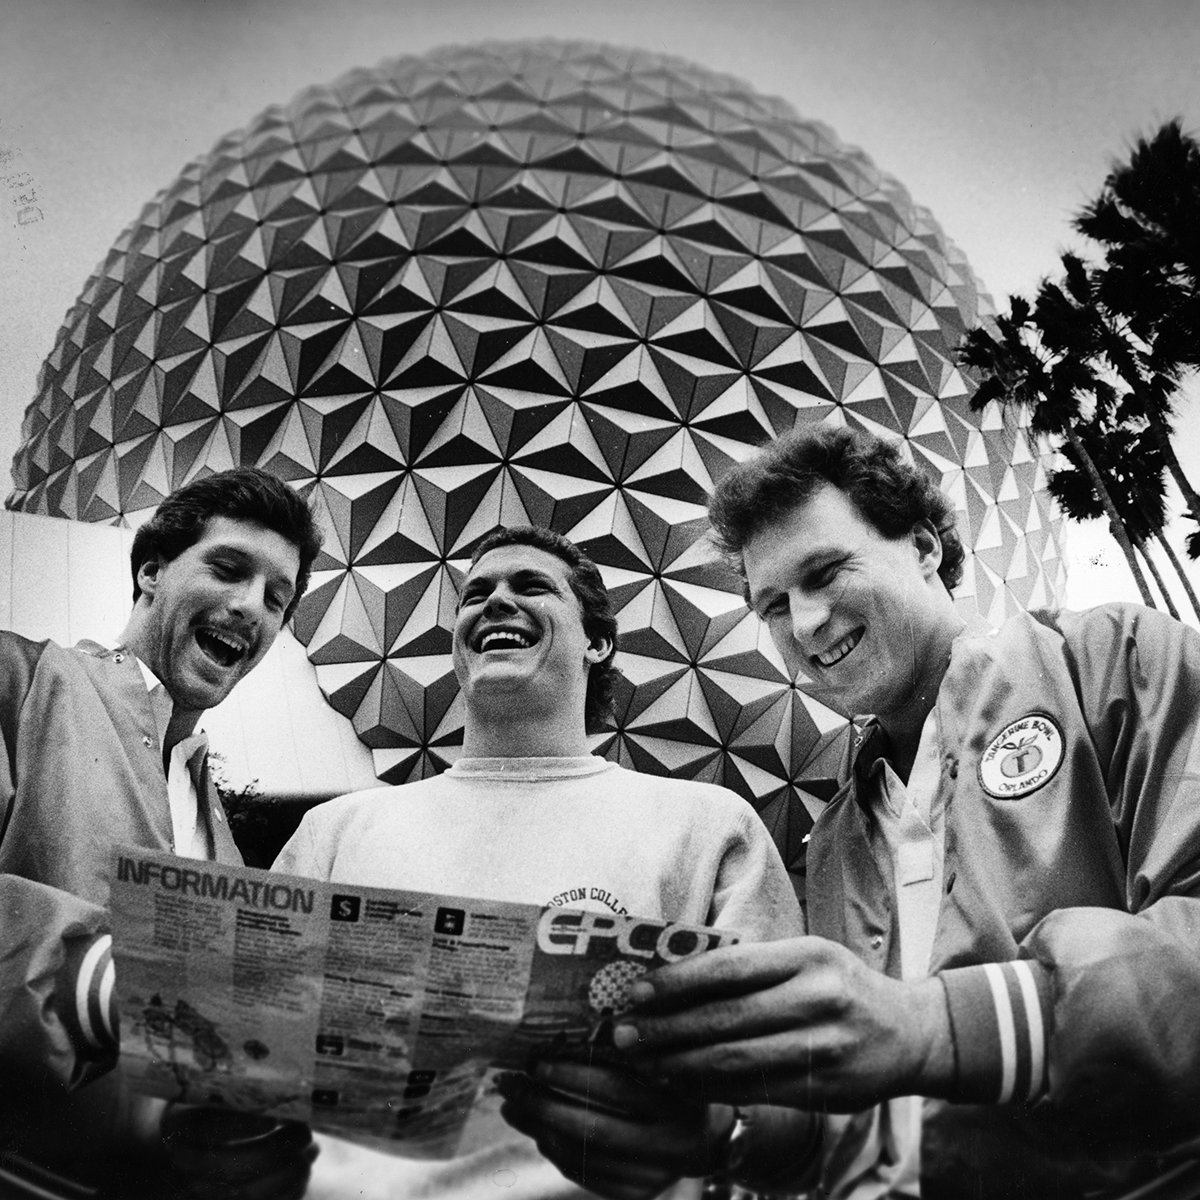 Slide 8 of 19: The Disney parks are enjoyed by all ages—even college students! This group exploring EPCOT was part of theBoston College football team in town for the Tangerine Bowl.